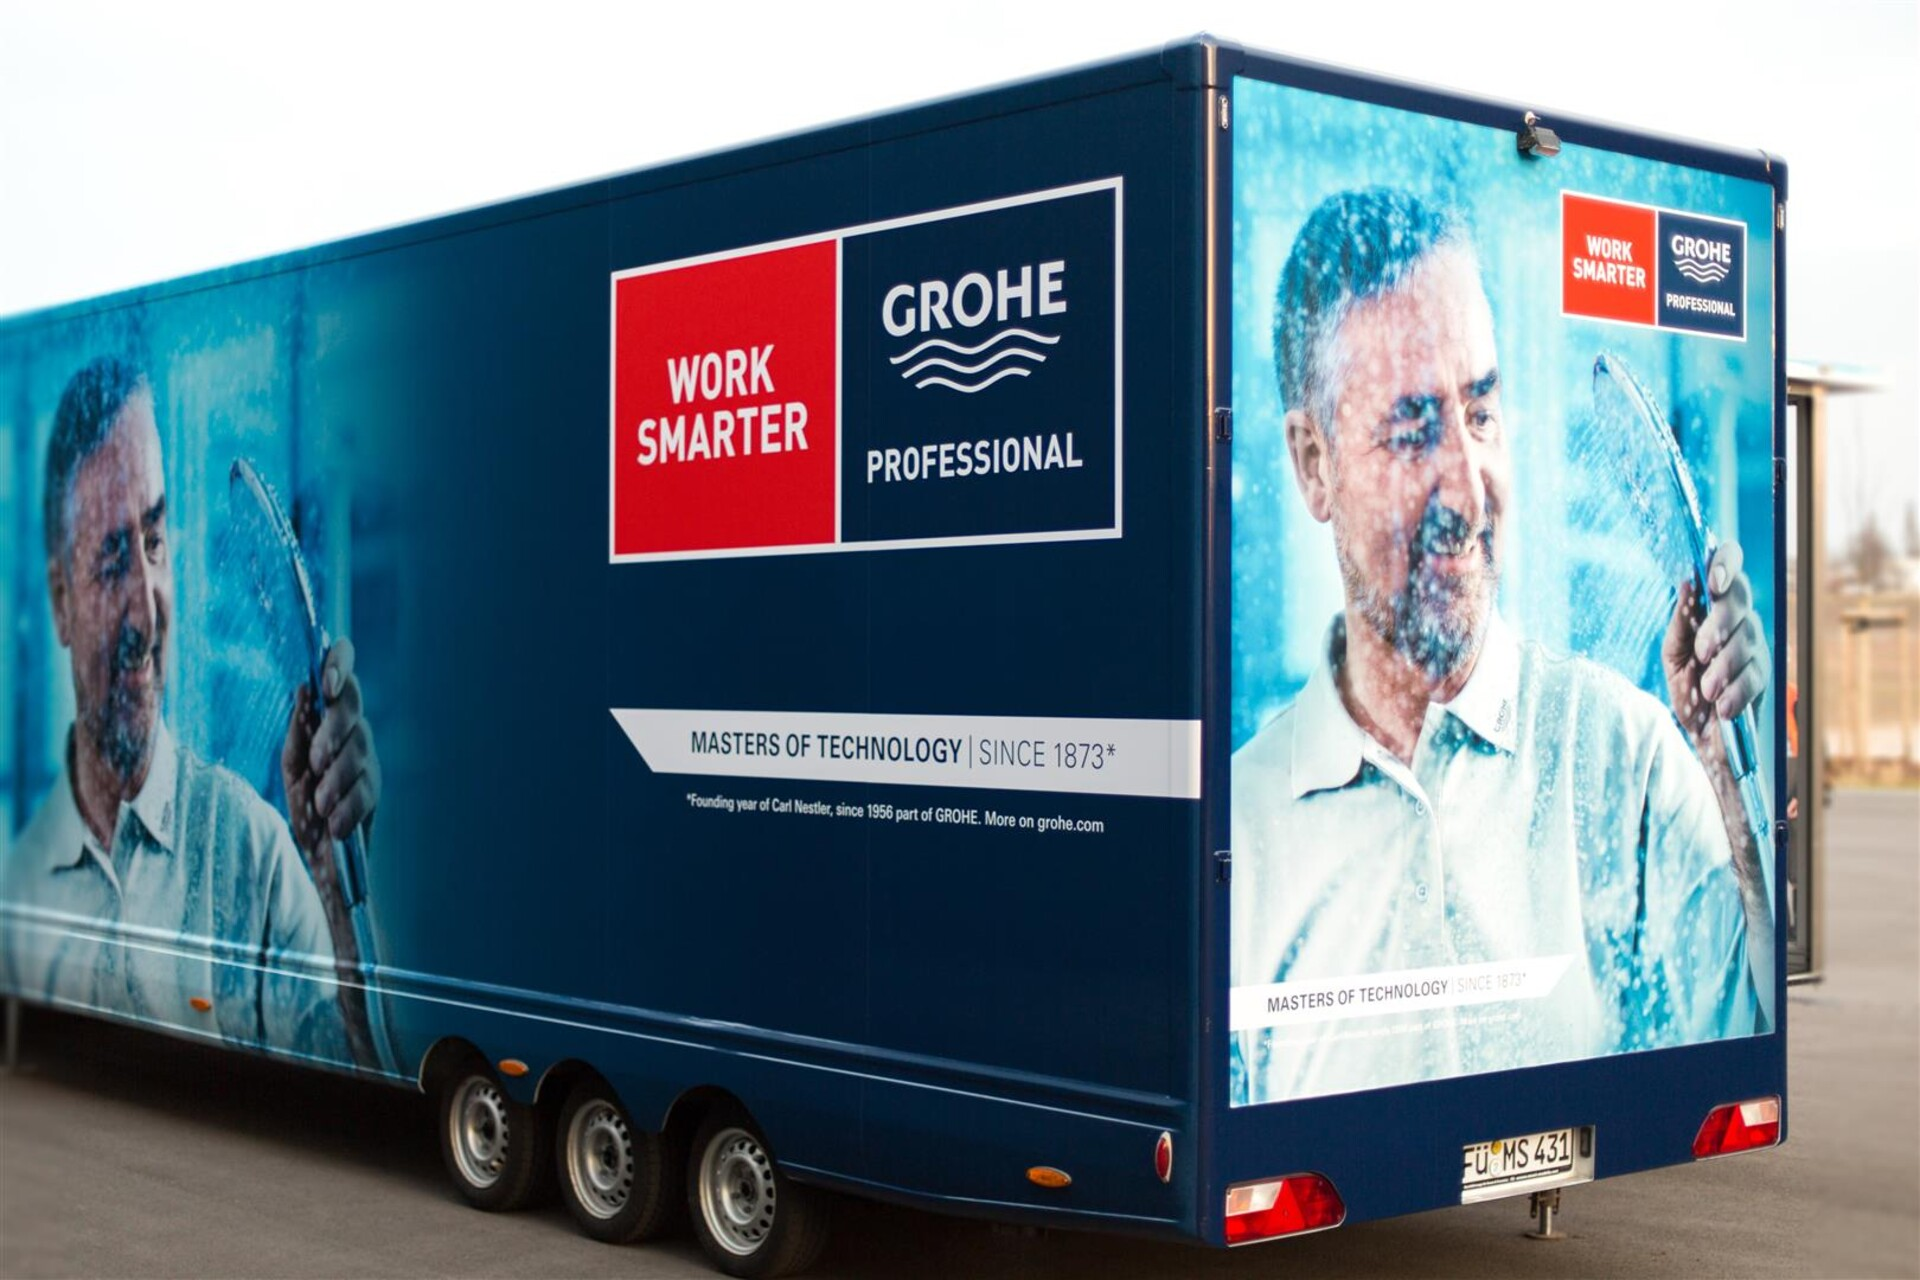 GROHE-Showtruck-2-back.jpg